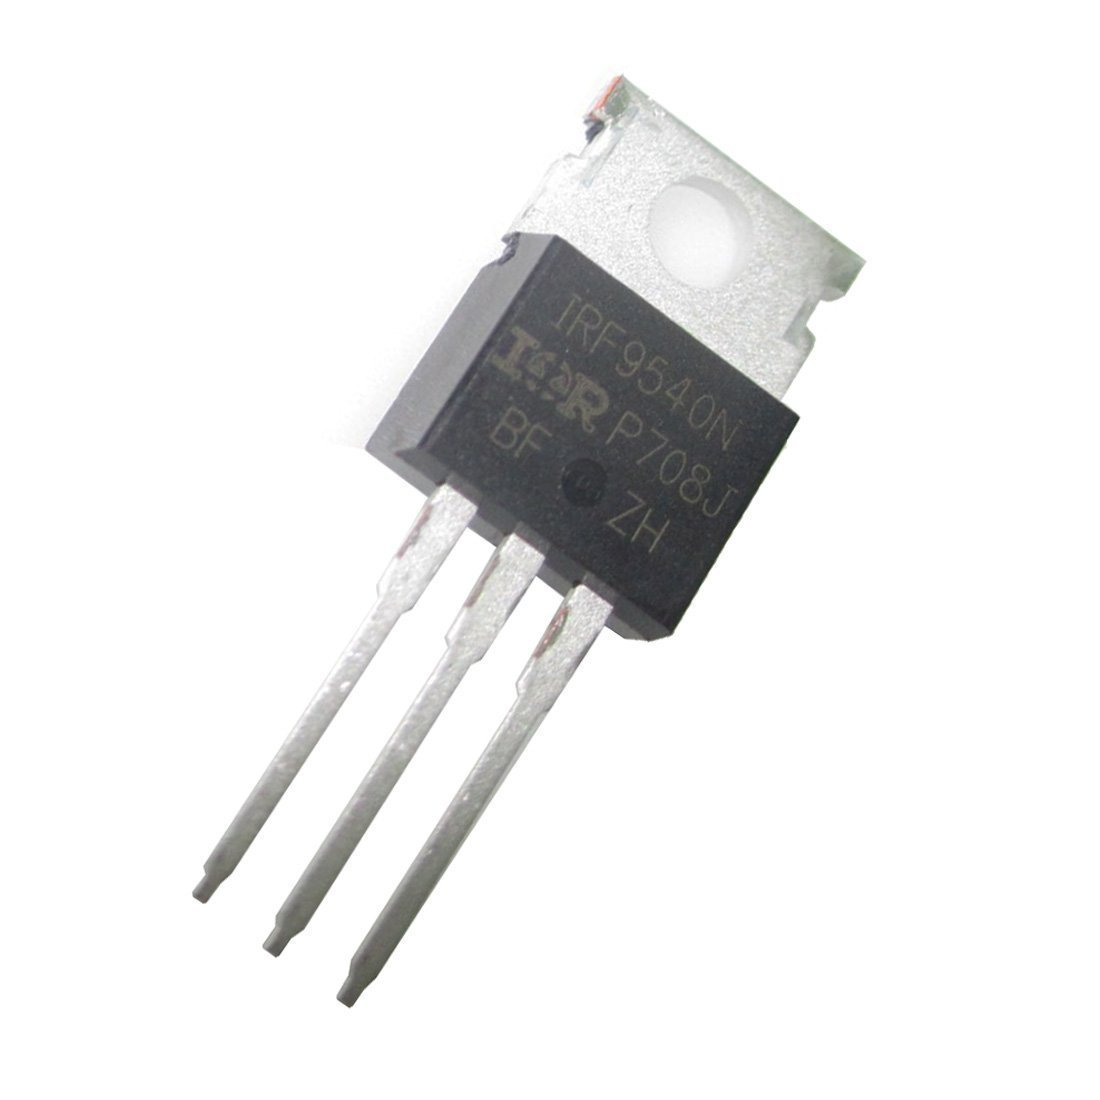 10PCS IRF9540 P-Channel Power mosfet 23A 100V TO-220 UE